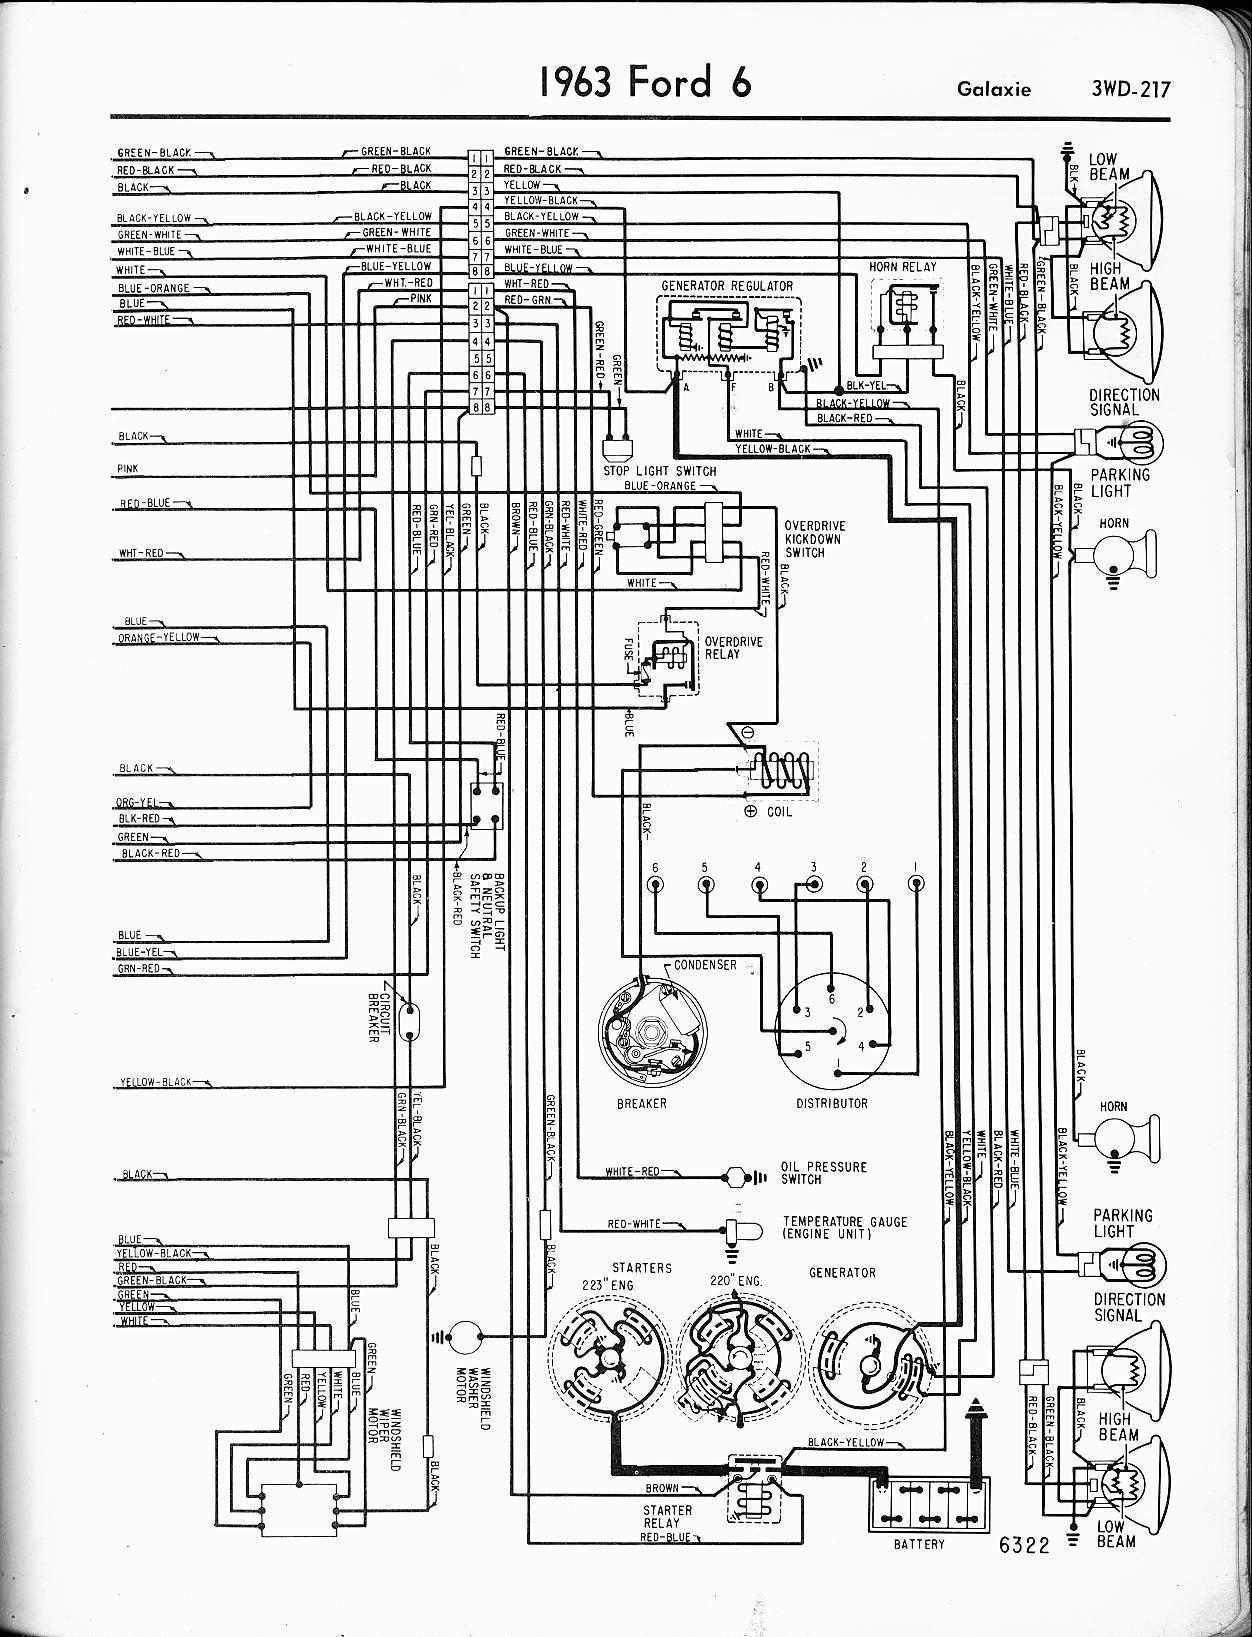 57 65 Ford Wiring Diagrams 1996 Transmission Diagram Schematic 1963 6 Cyl Galaxie Right